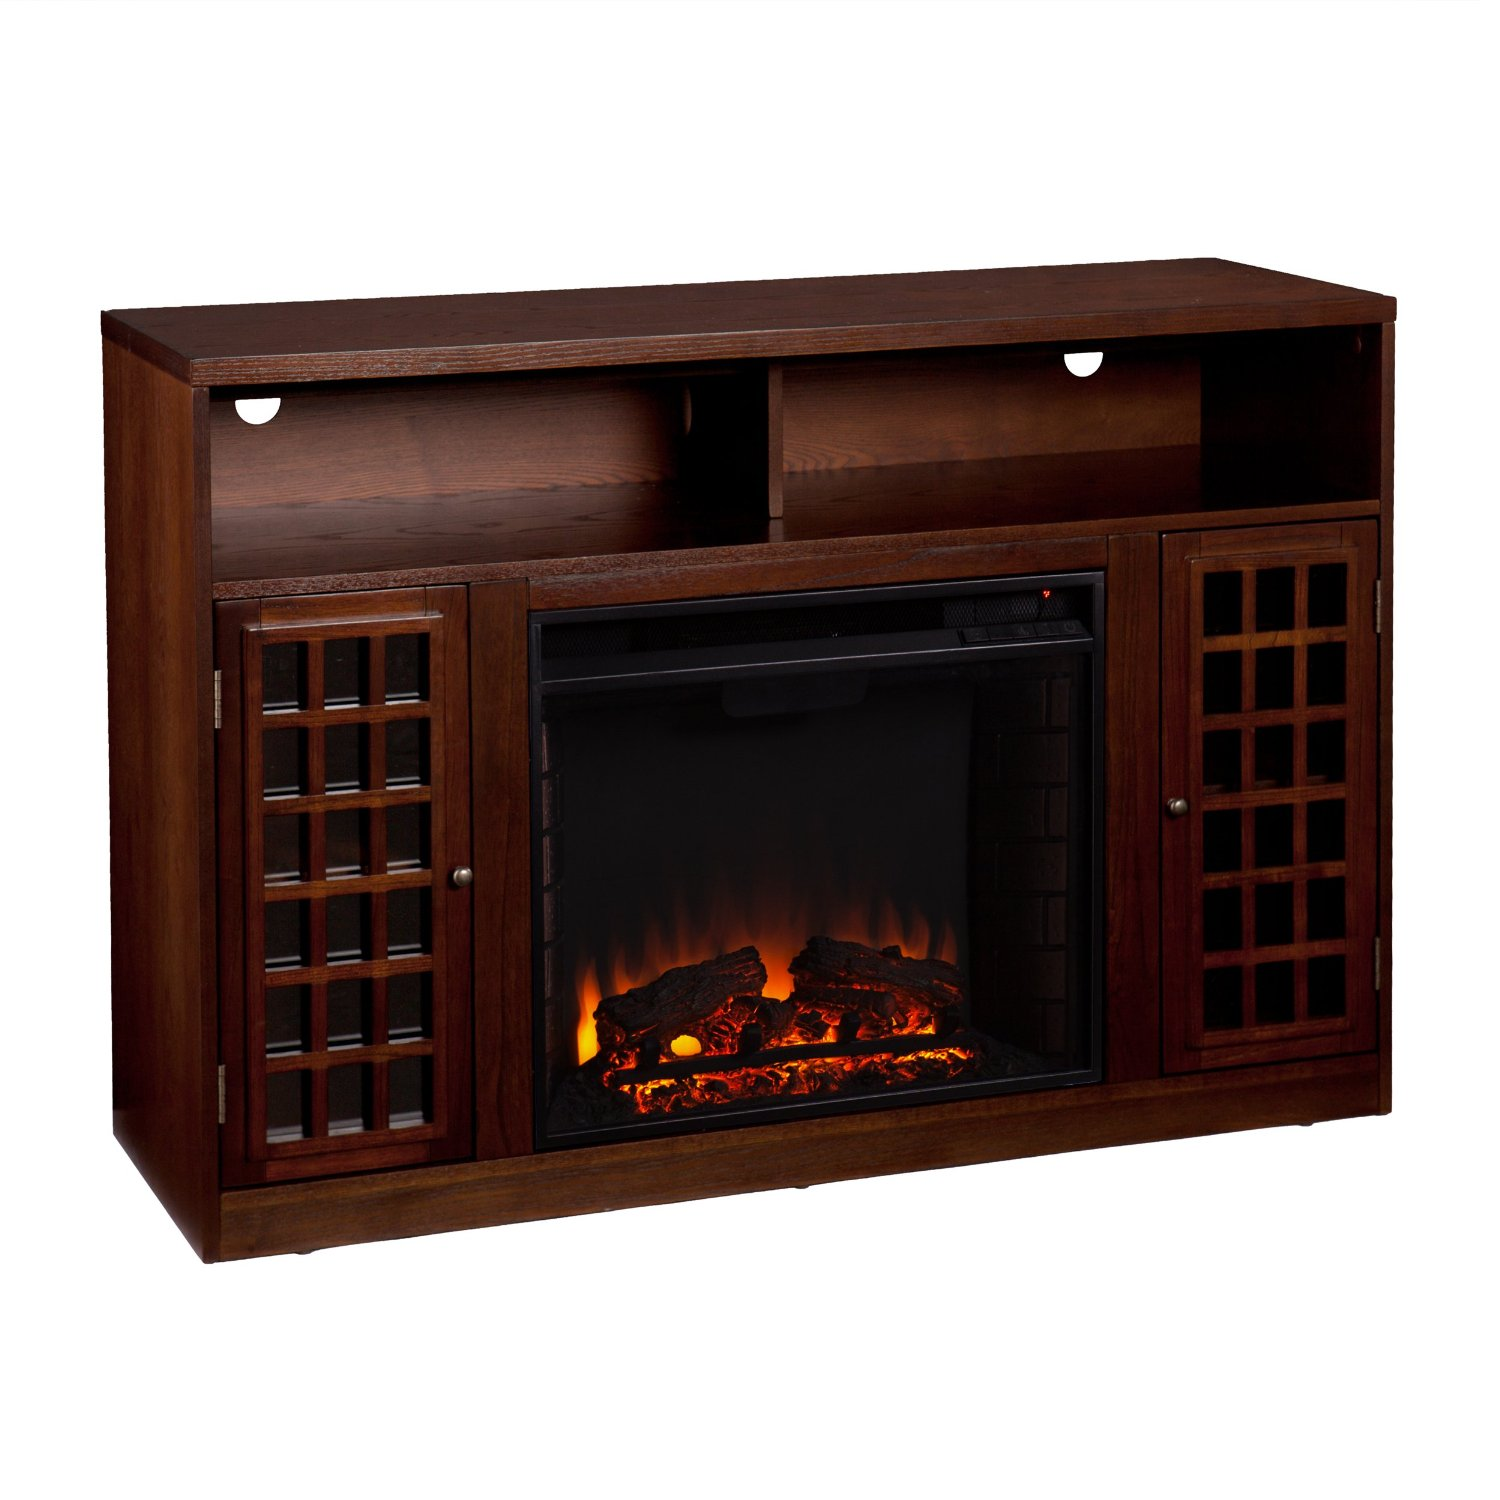 Top 10 Best Electric Fireplace TV Stand Reviews — Making the Right Choice in 2020